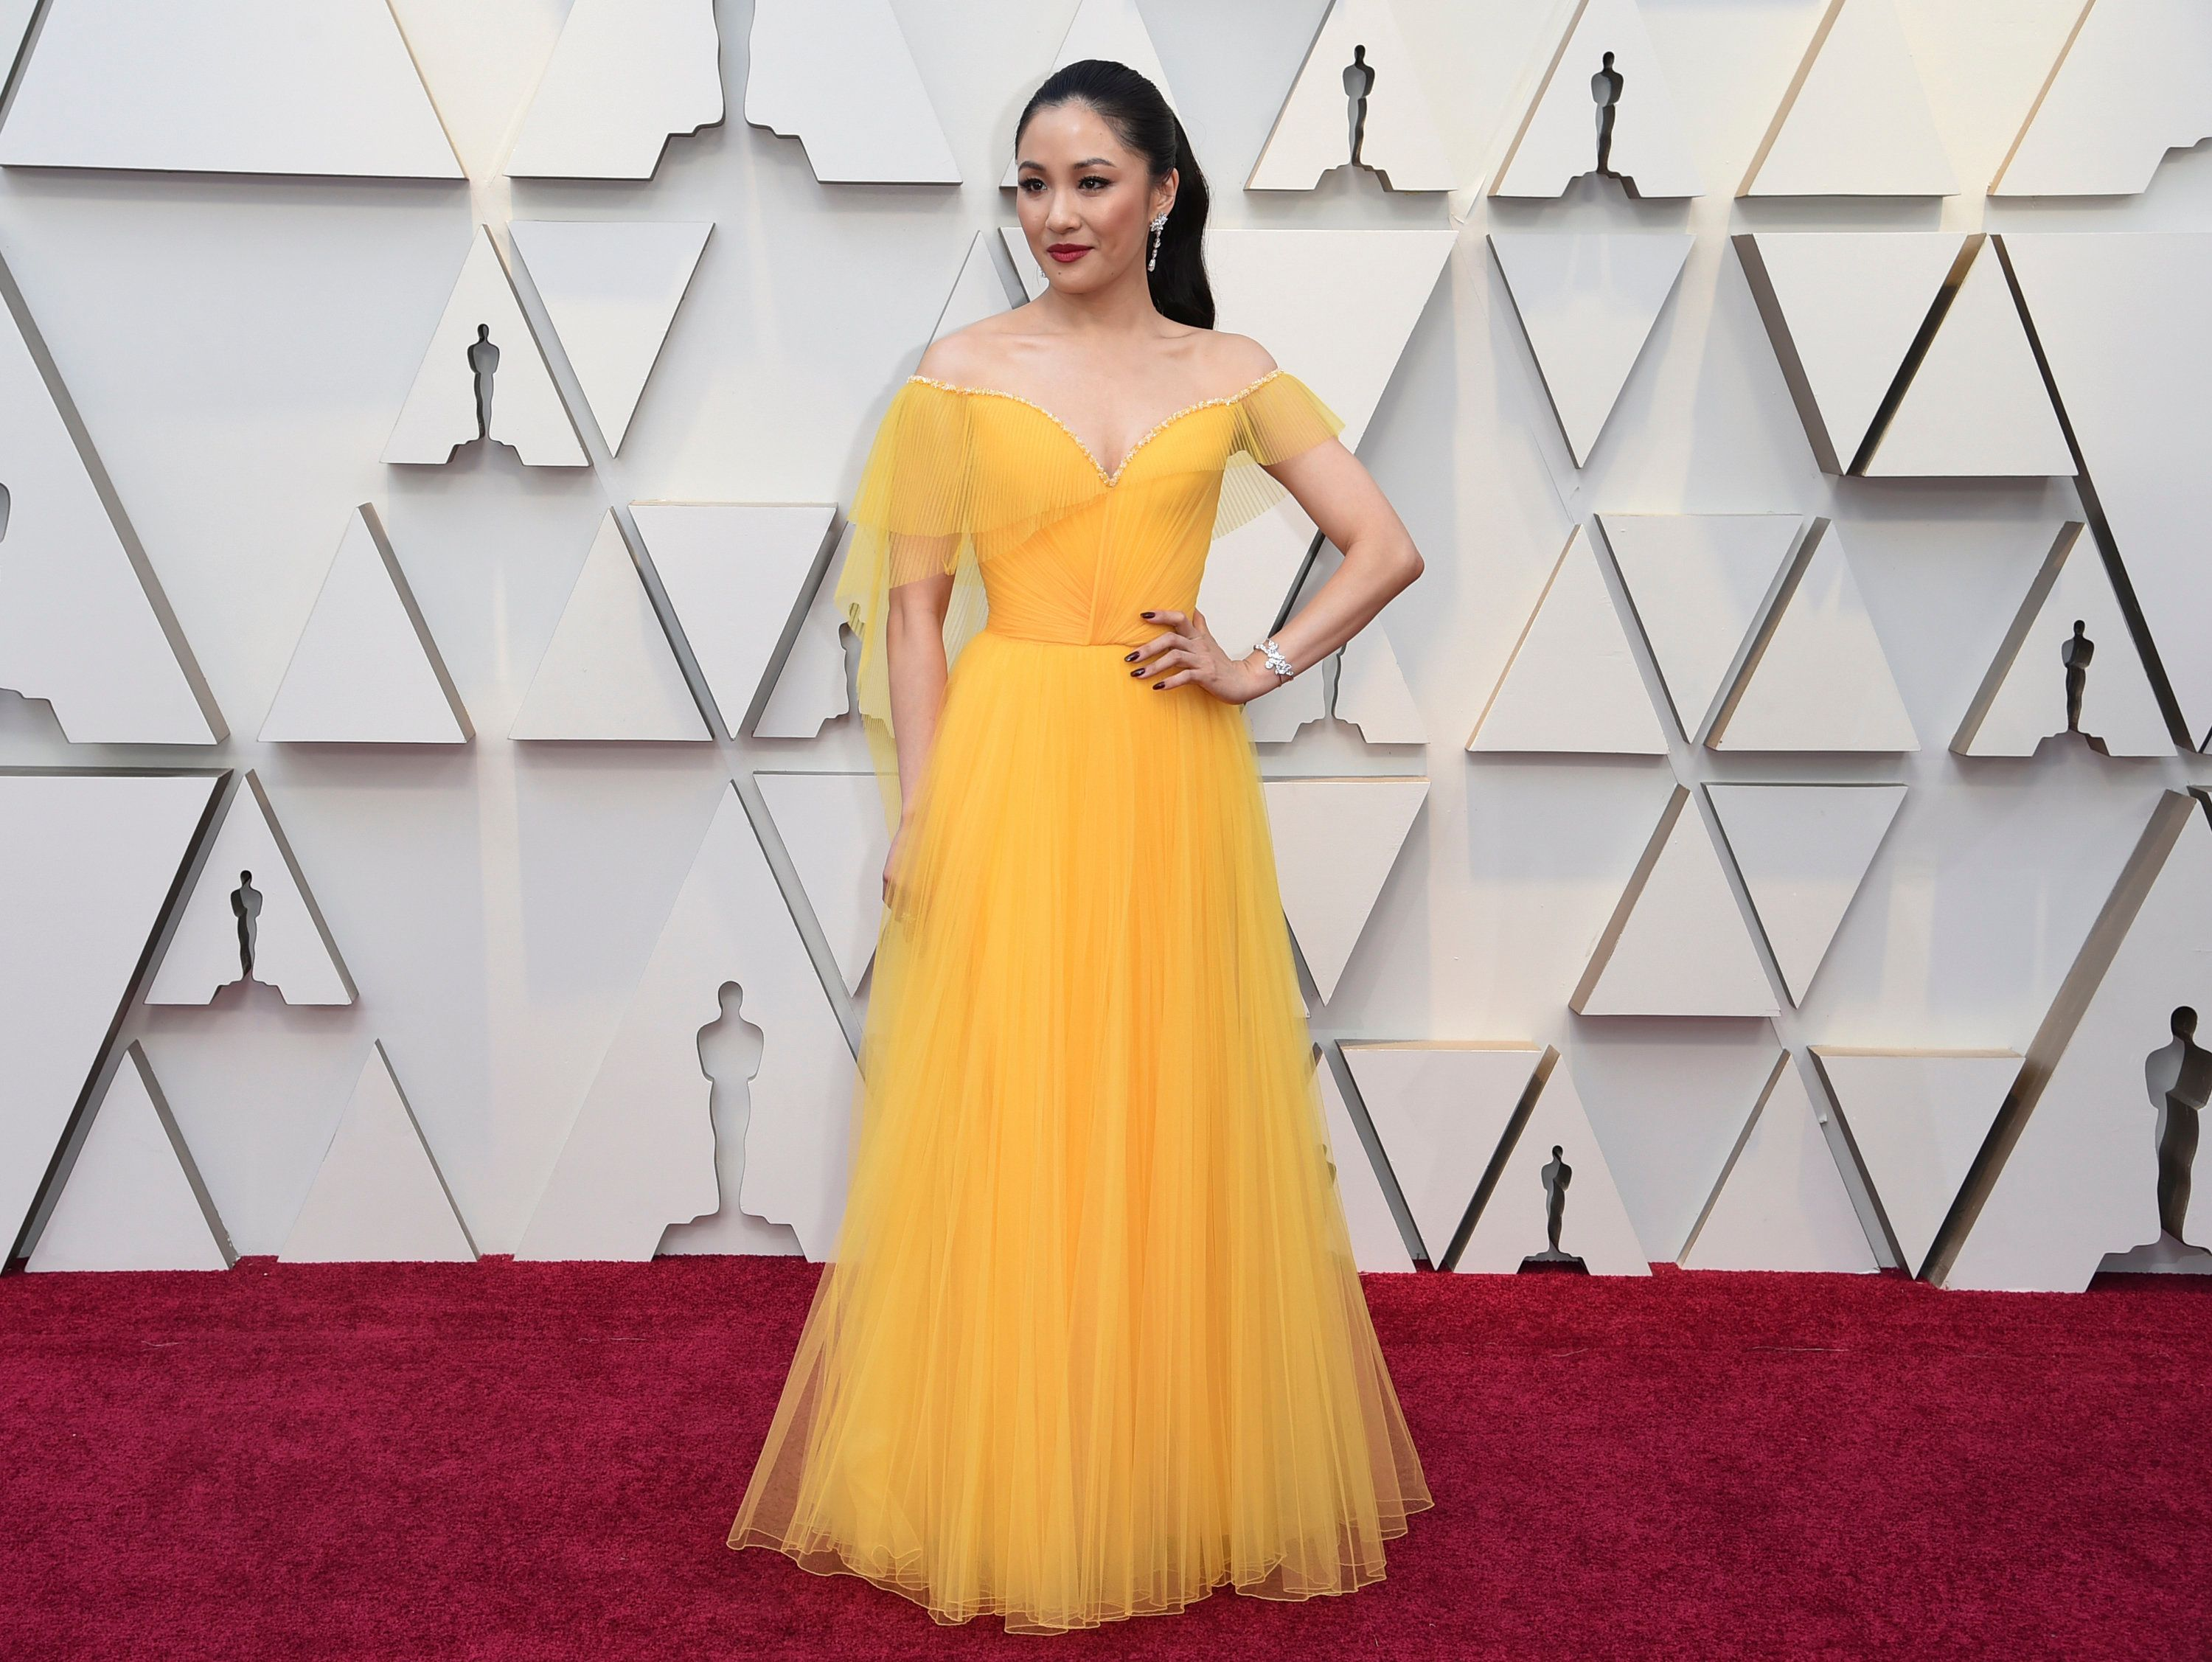 Constance Wu arrives at the Oscars on Sunday, Feb. 24, 2019, at the Dolby Theatre in Los Angeles. (Photo by Richard Shotwell/Invision/AP)